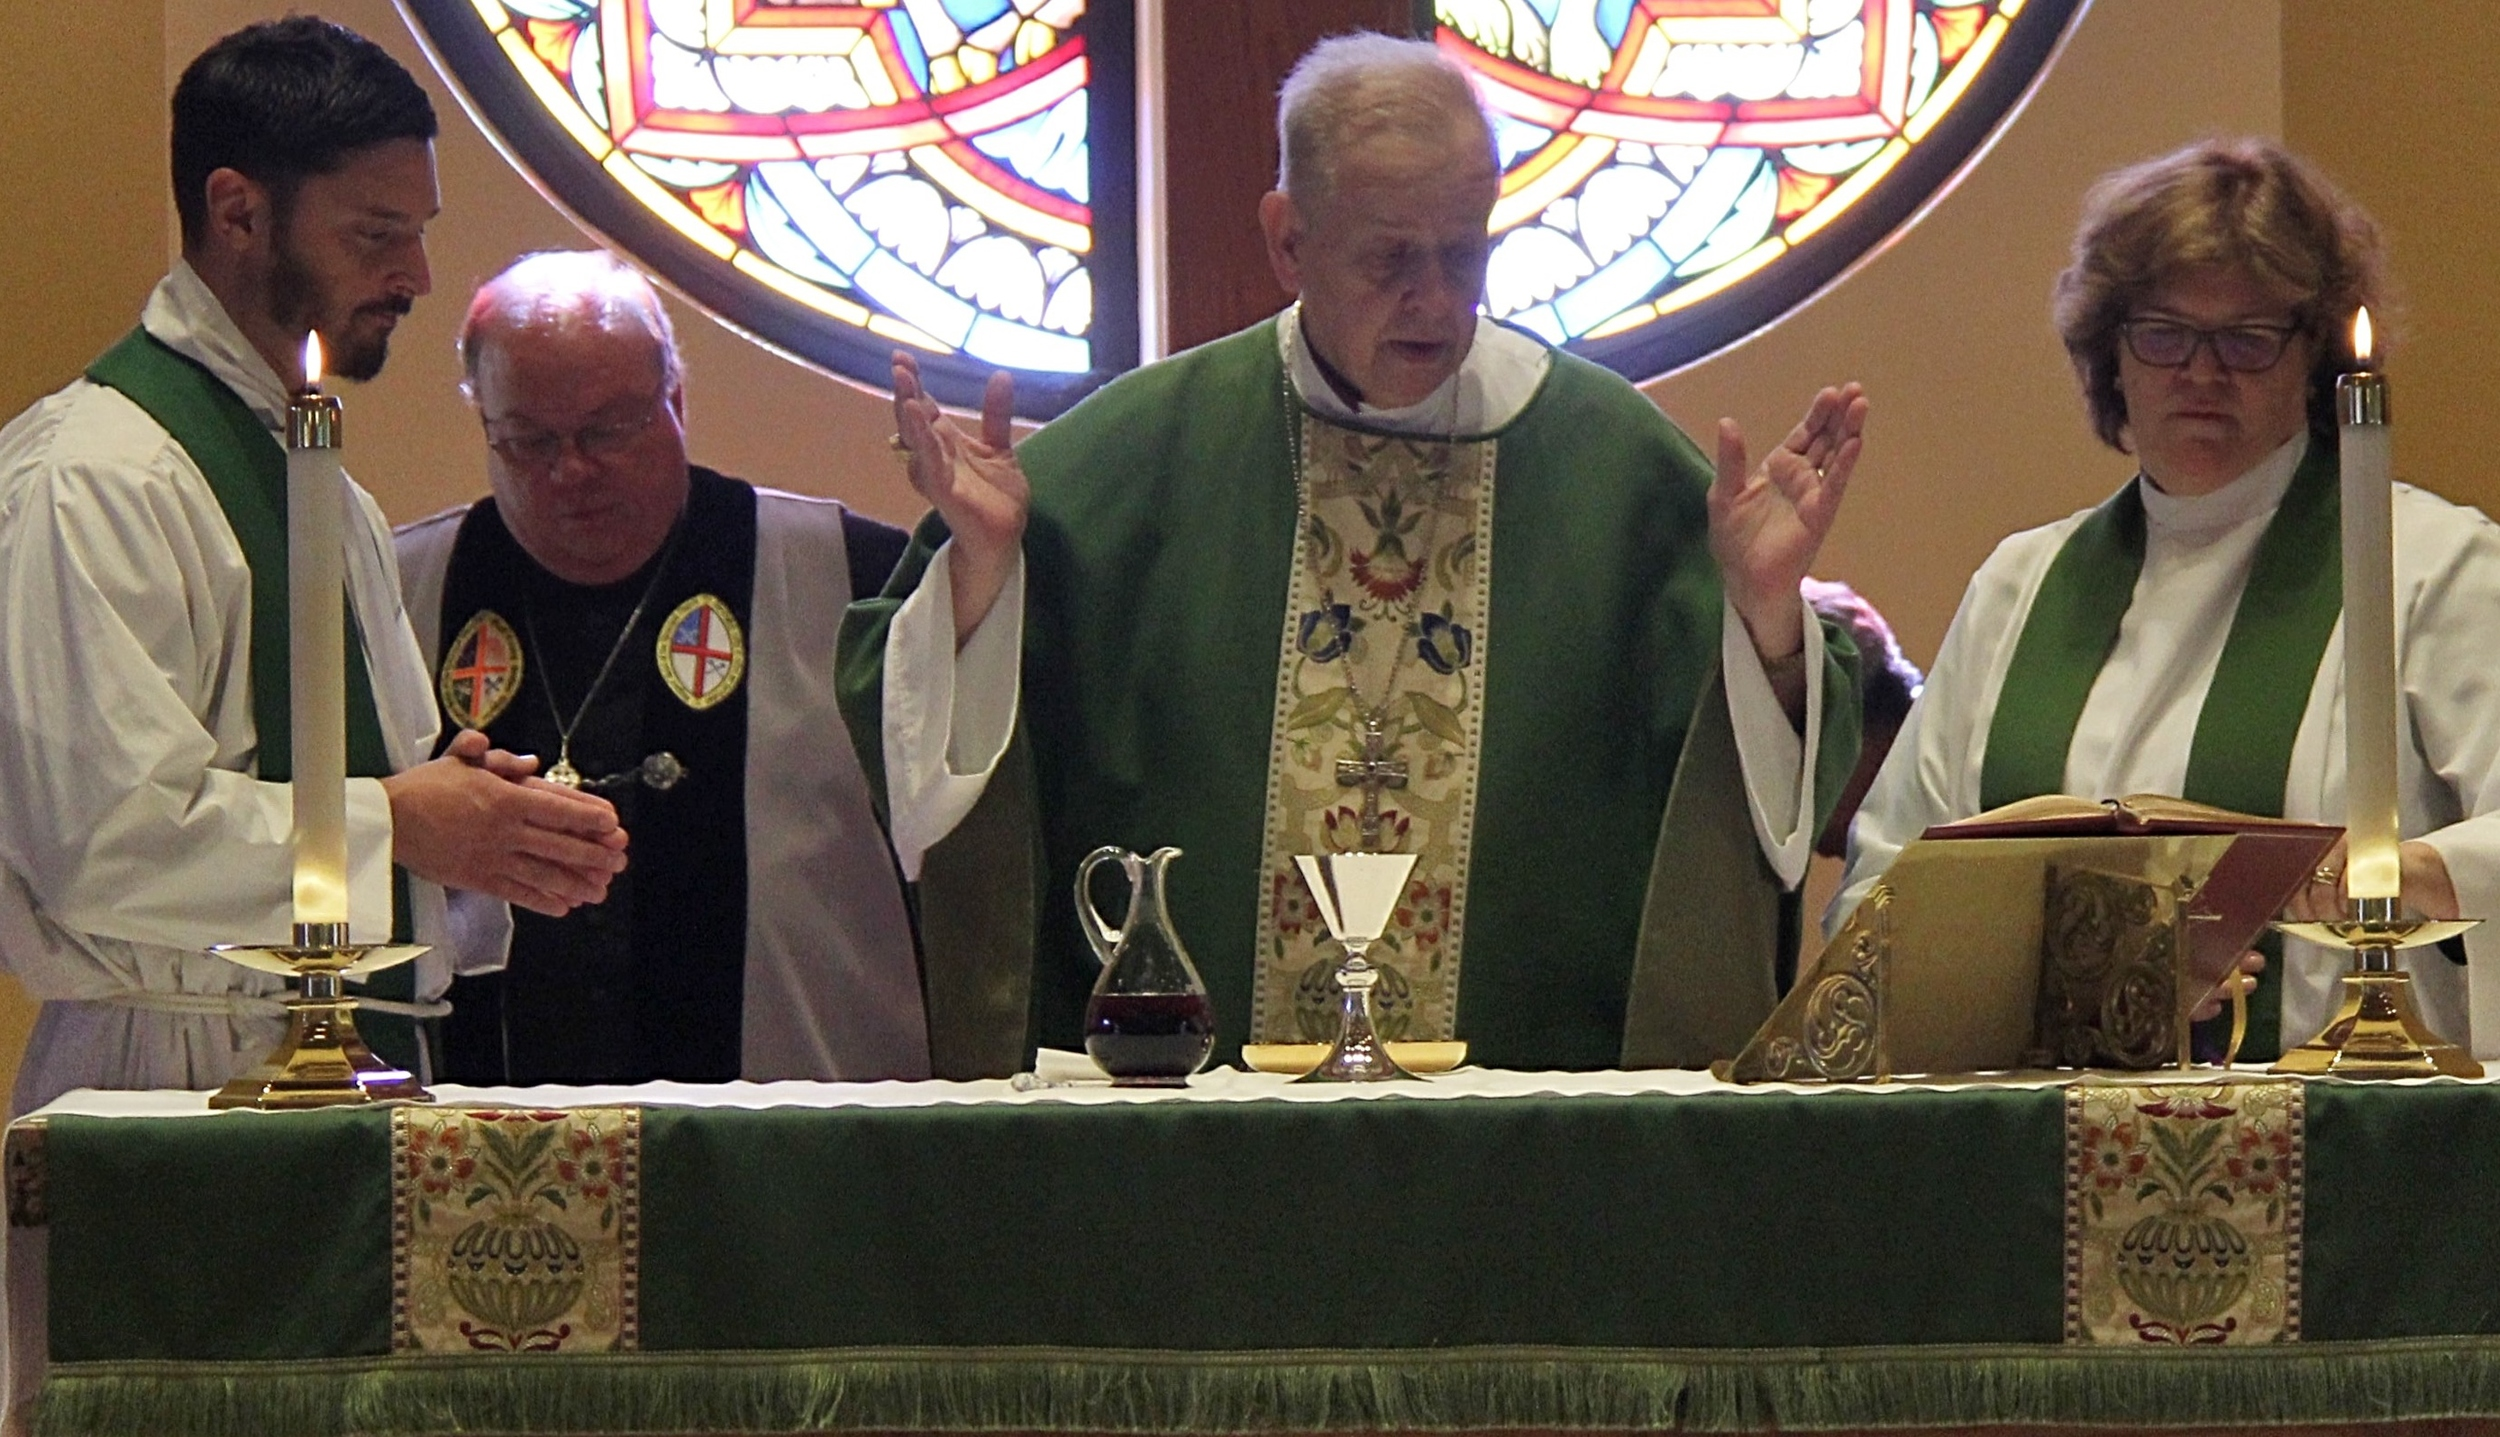 The Rev. Thompson, Verger and meeting host, David Neville, The Bishop and The Rev. Weston